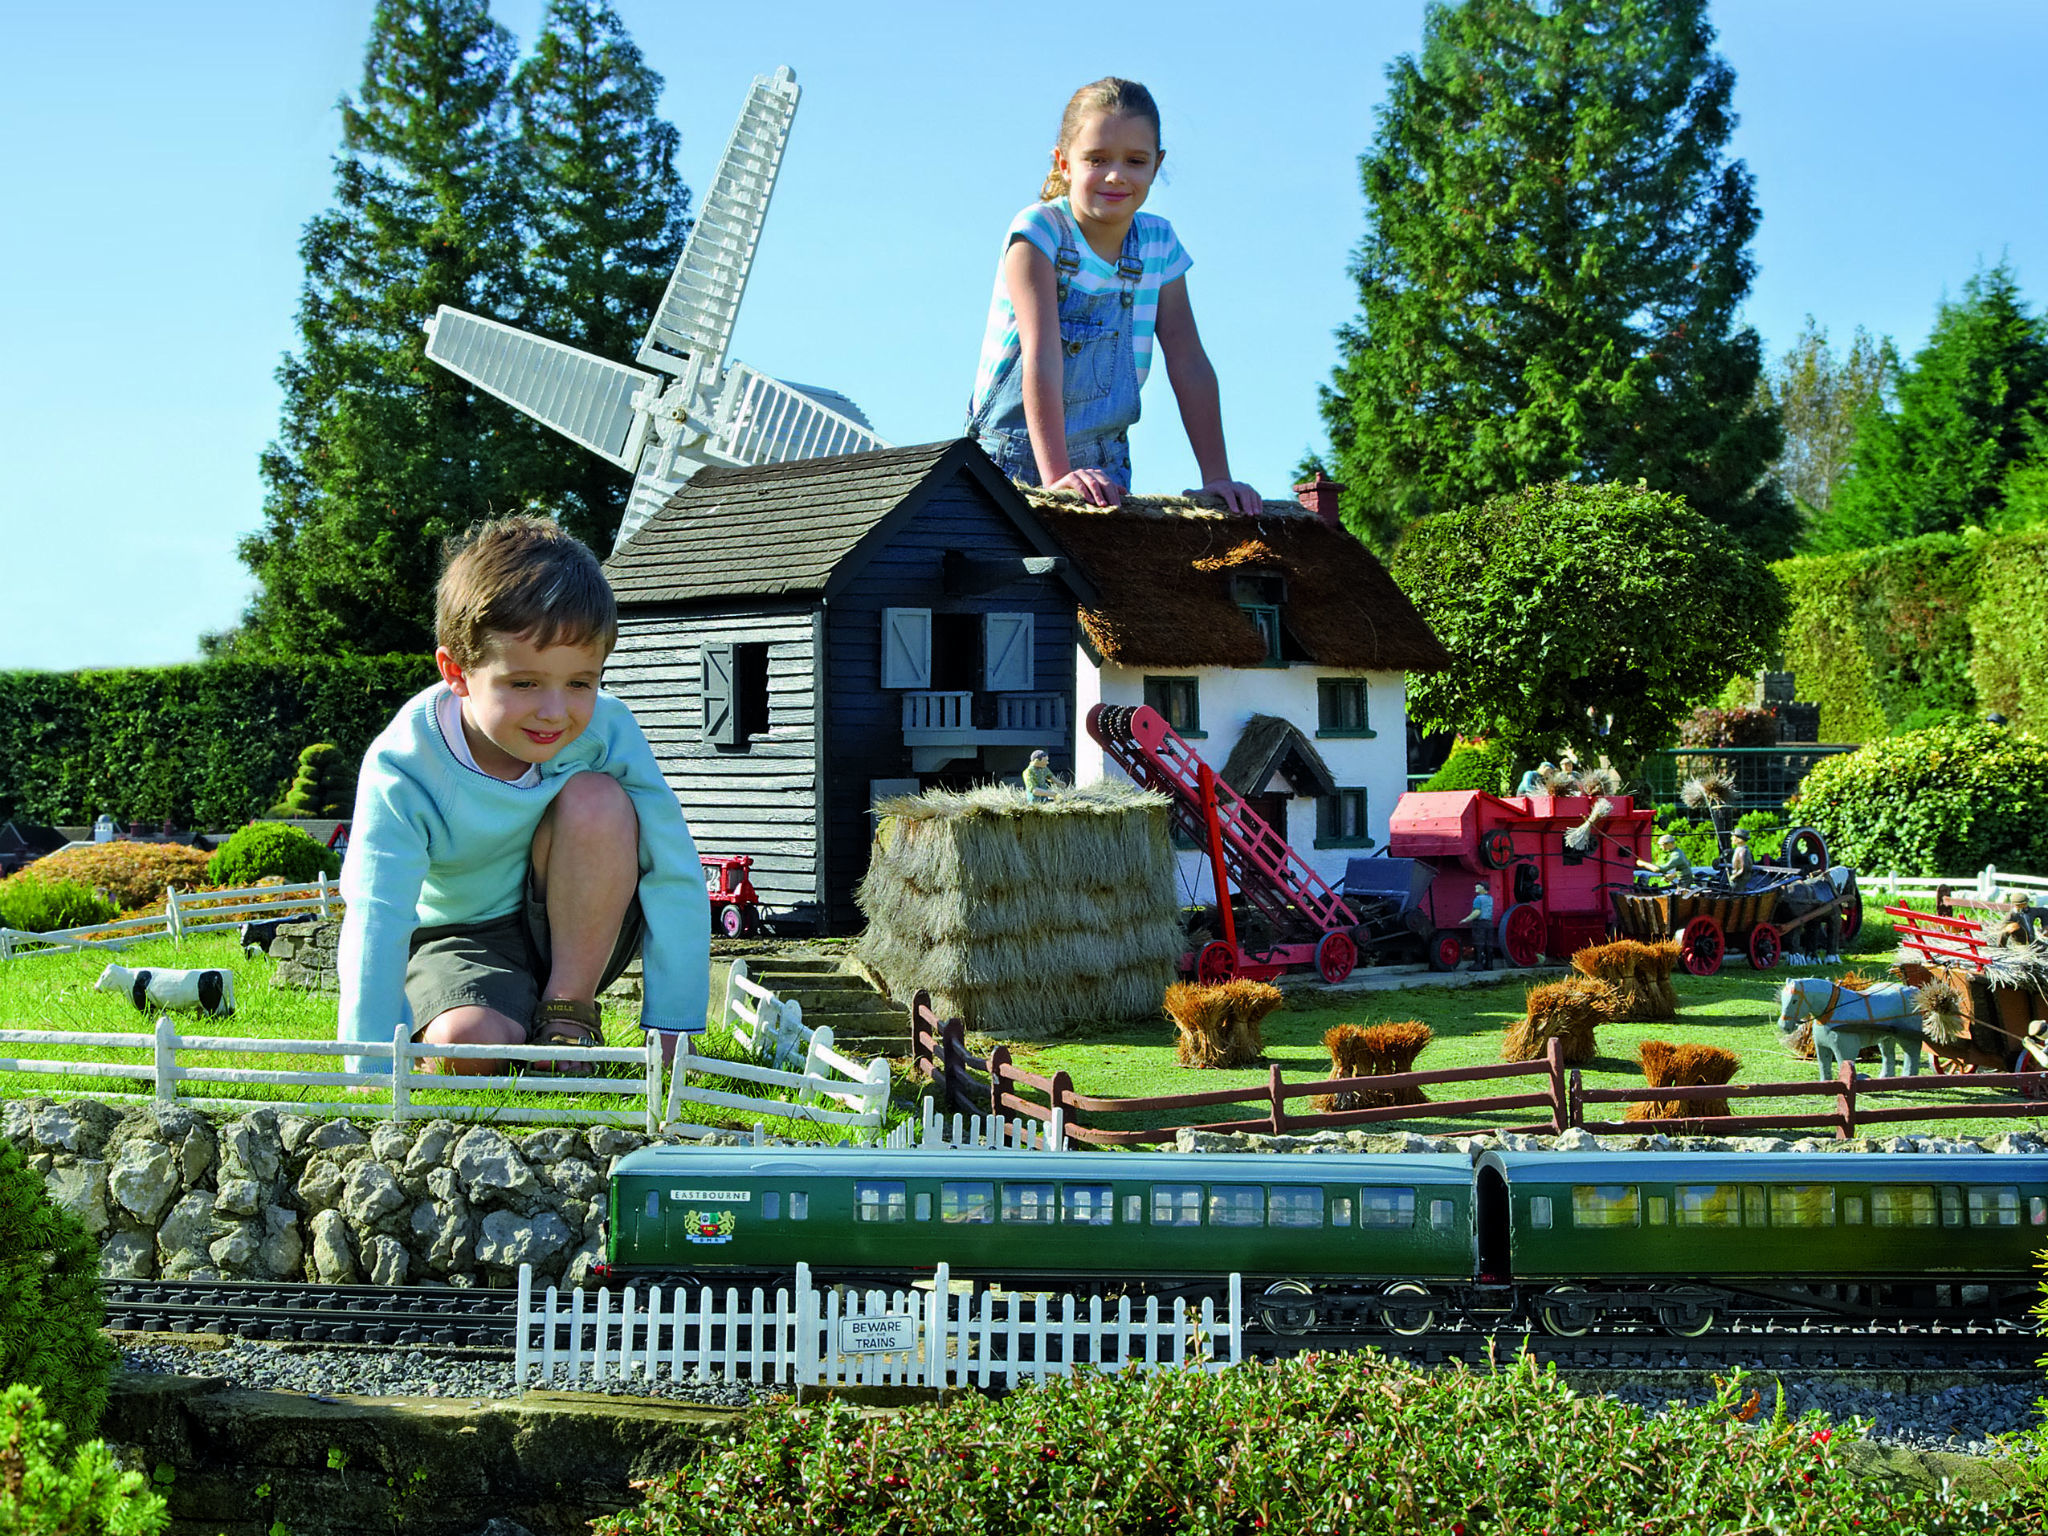 Days Out With Kids Buckinghamshire